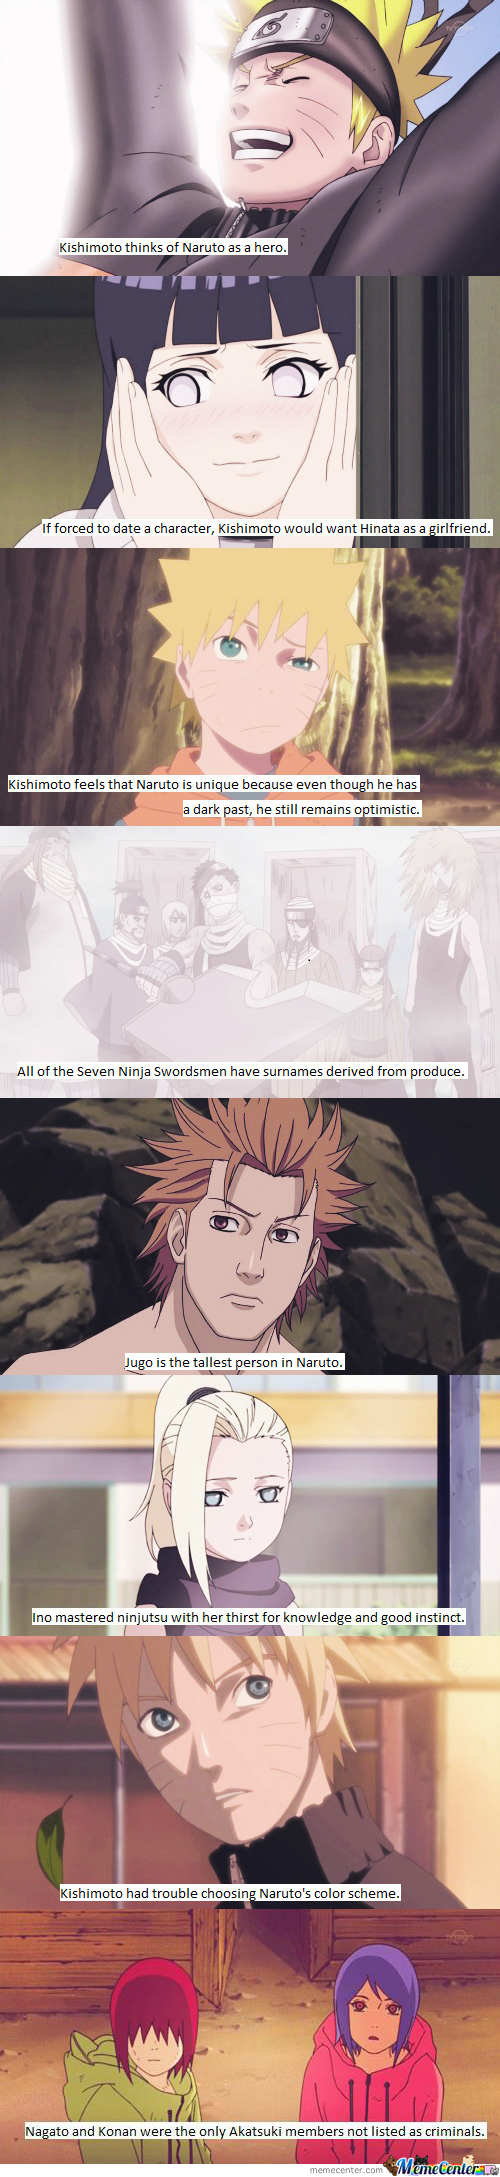 Naruto Facts #8